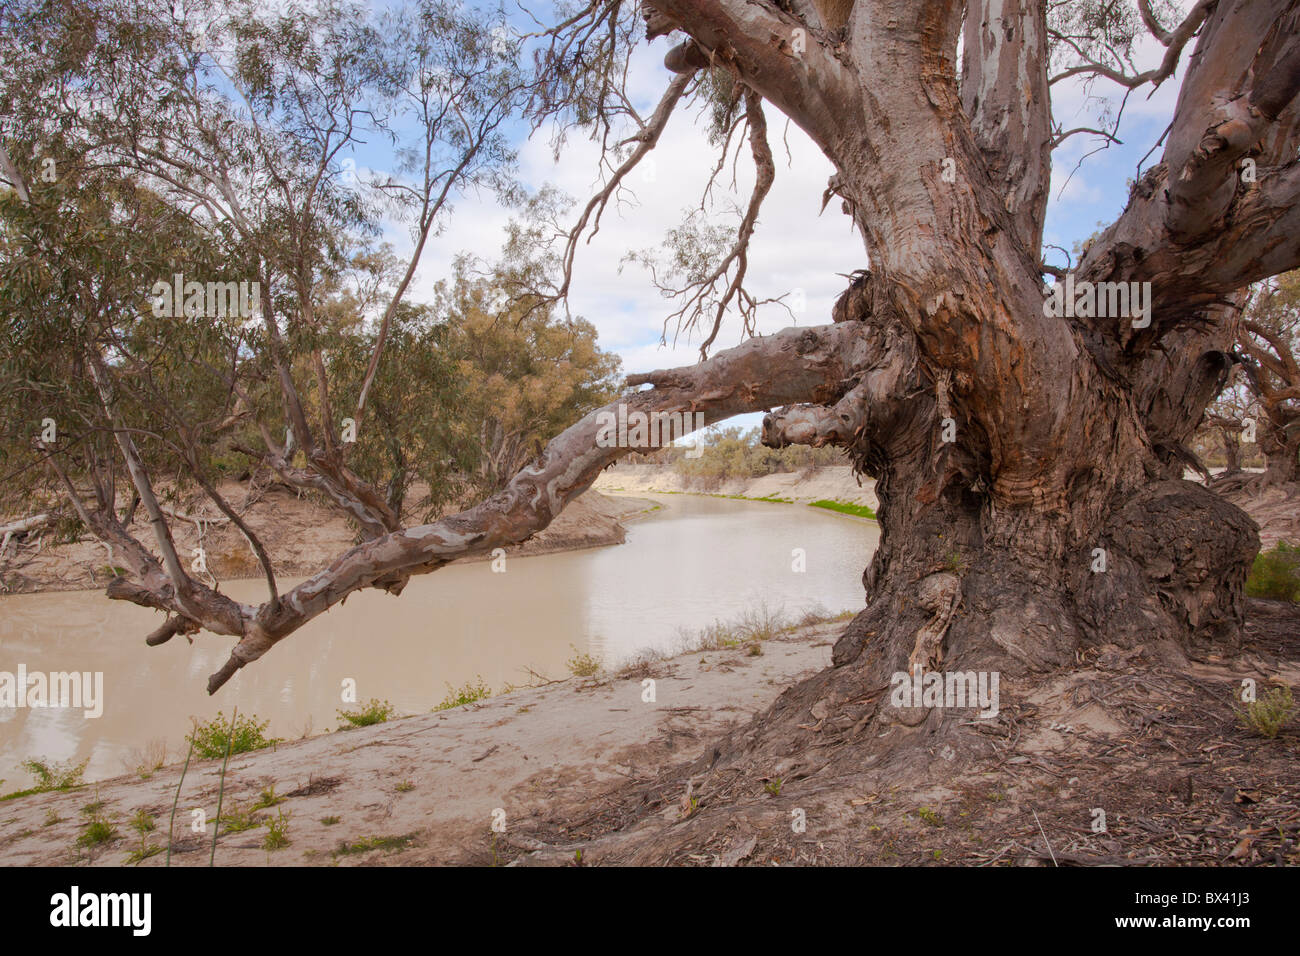 An old, gnarled River Red Gum on the banks of the Darling River, Kinchega National Park, Menindee, Broken Hill, - Stock Image